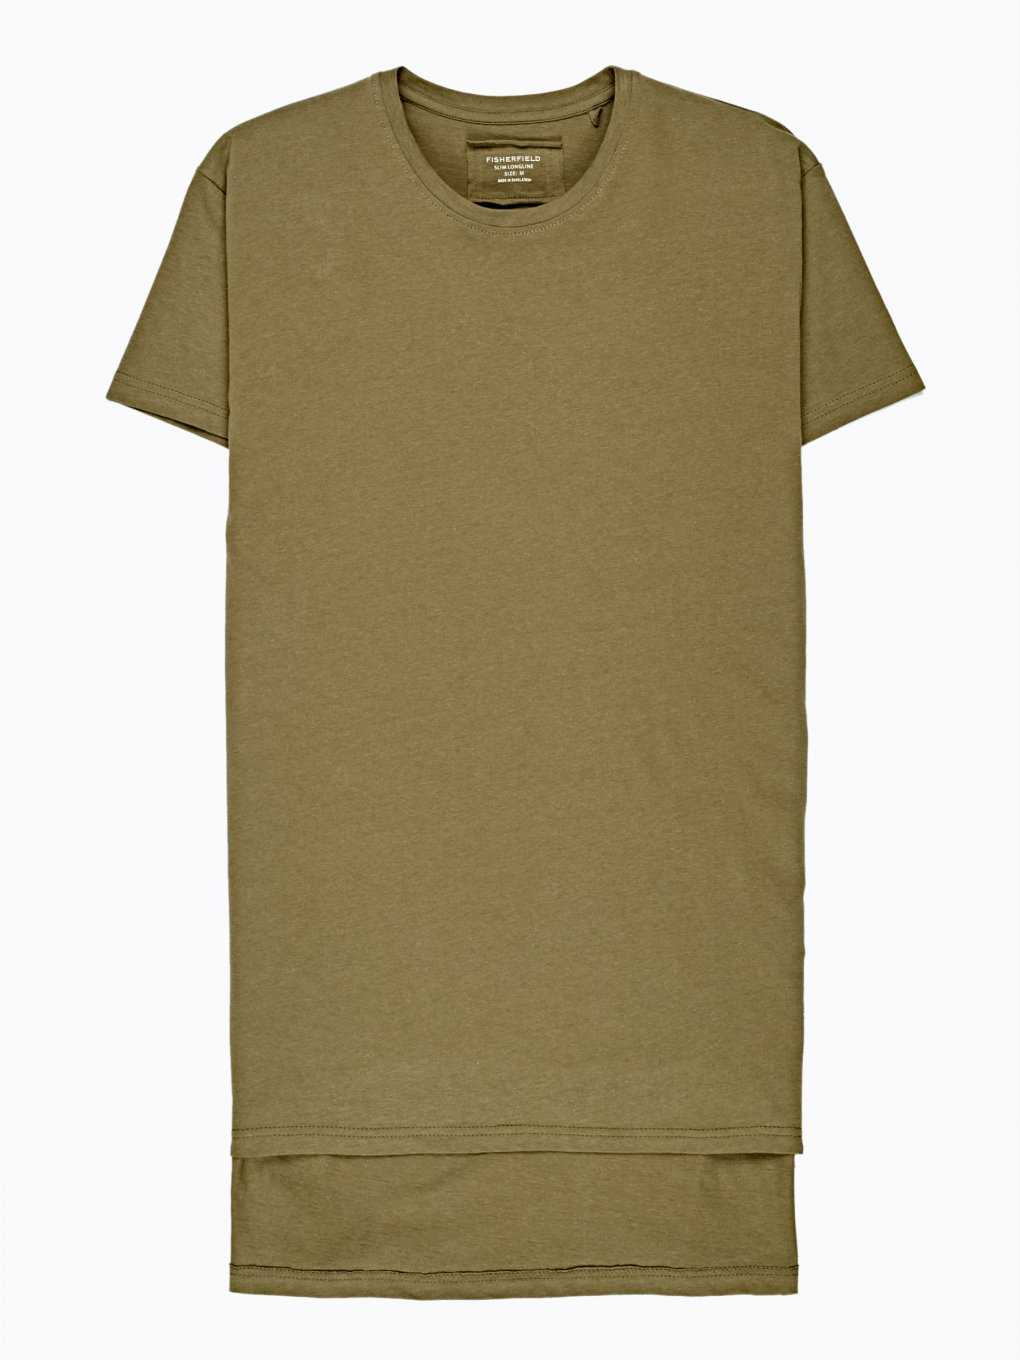 LONGLINE T-SHIRT WITH SIDE ZIPPERS